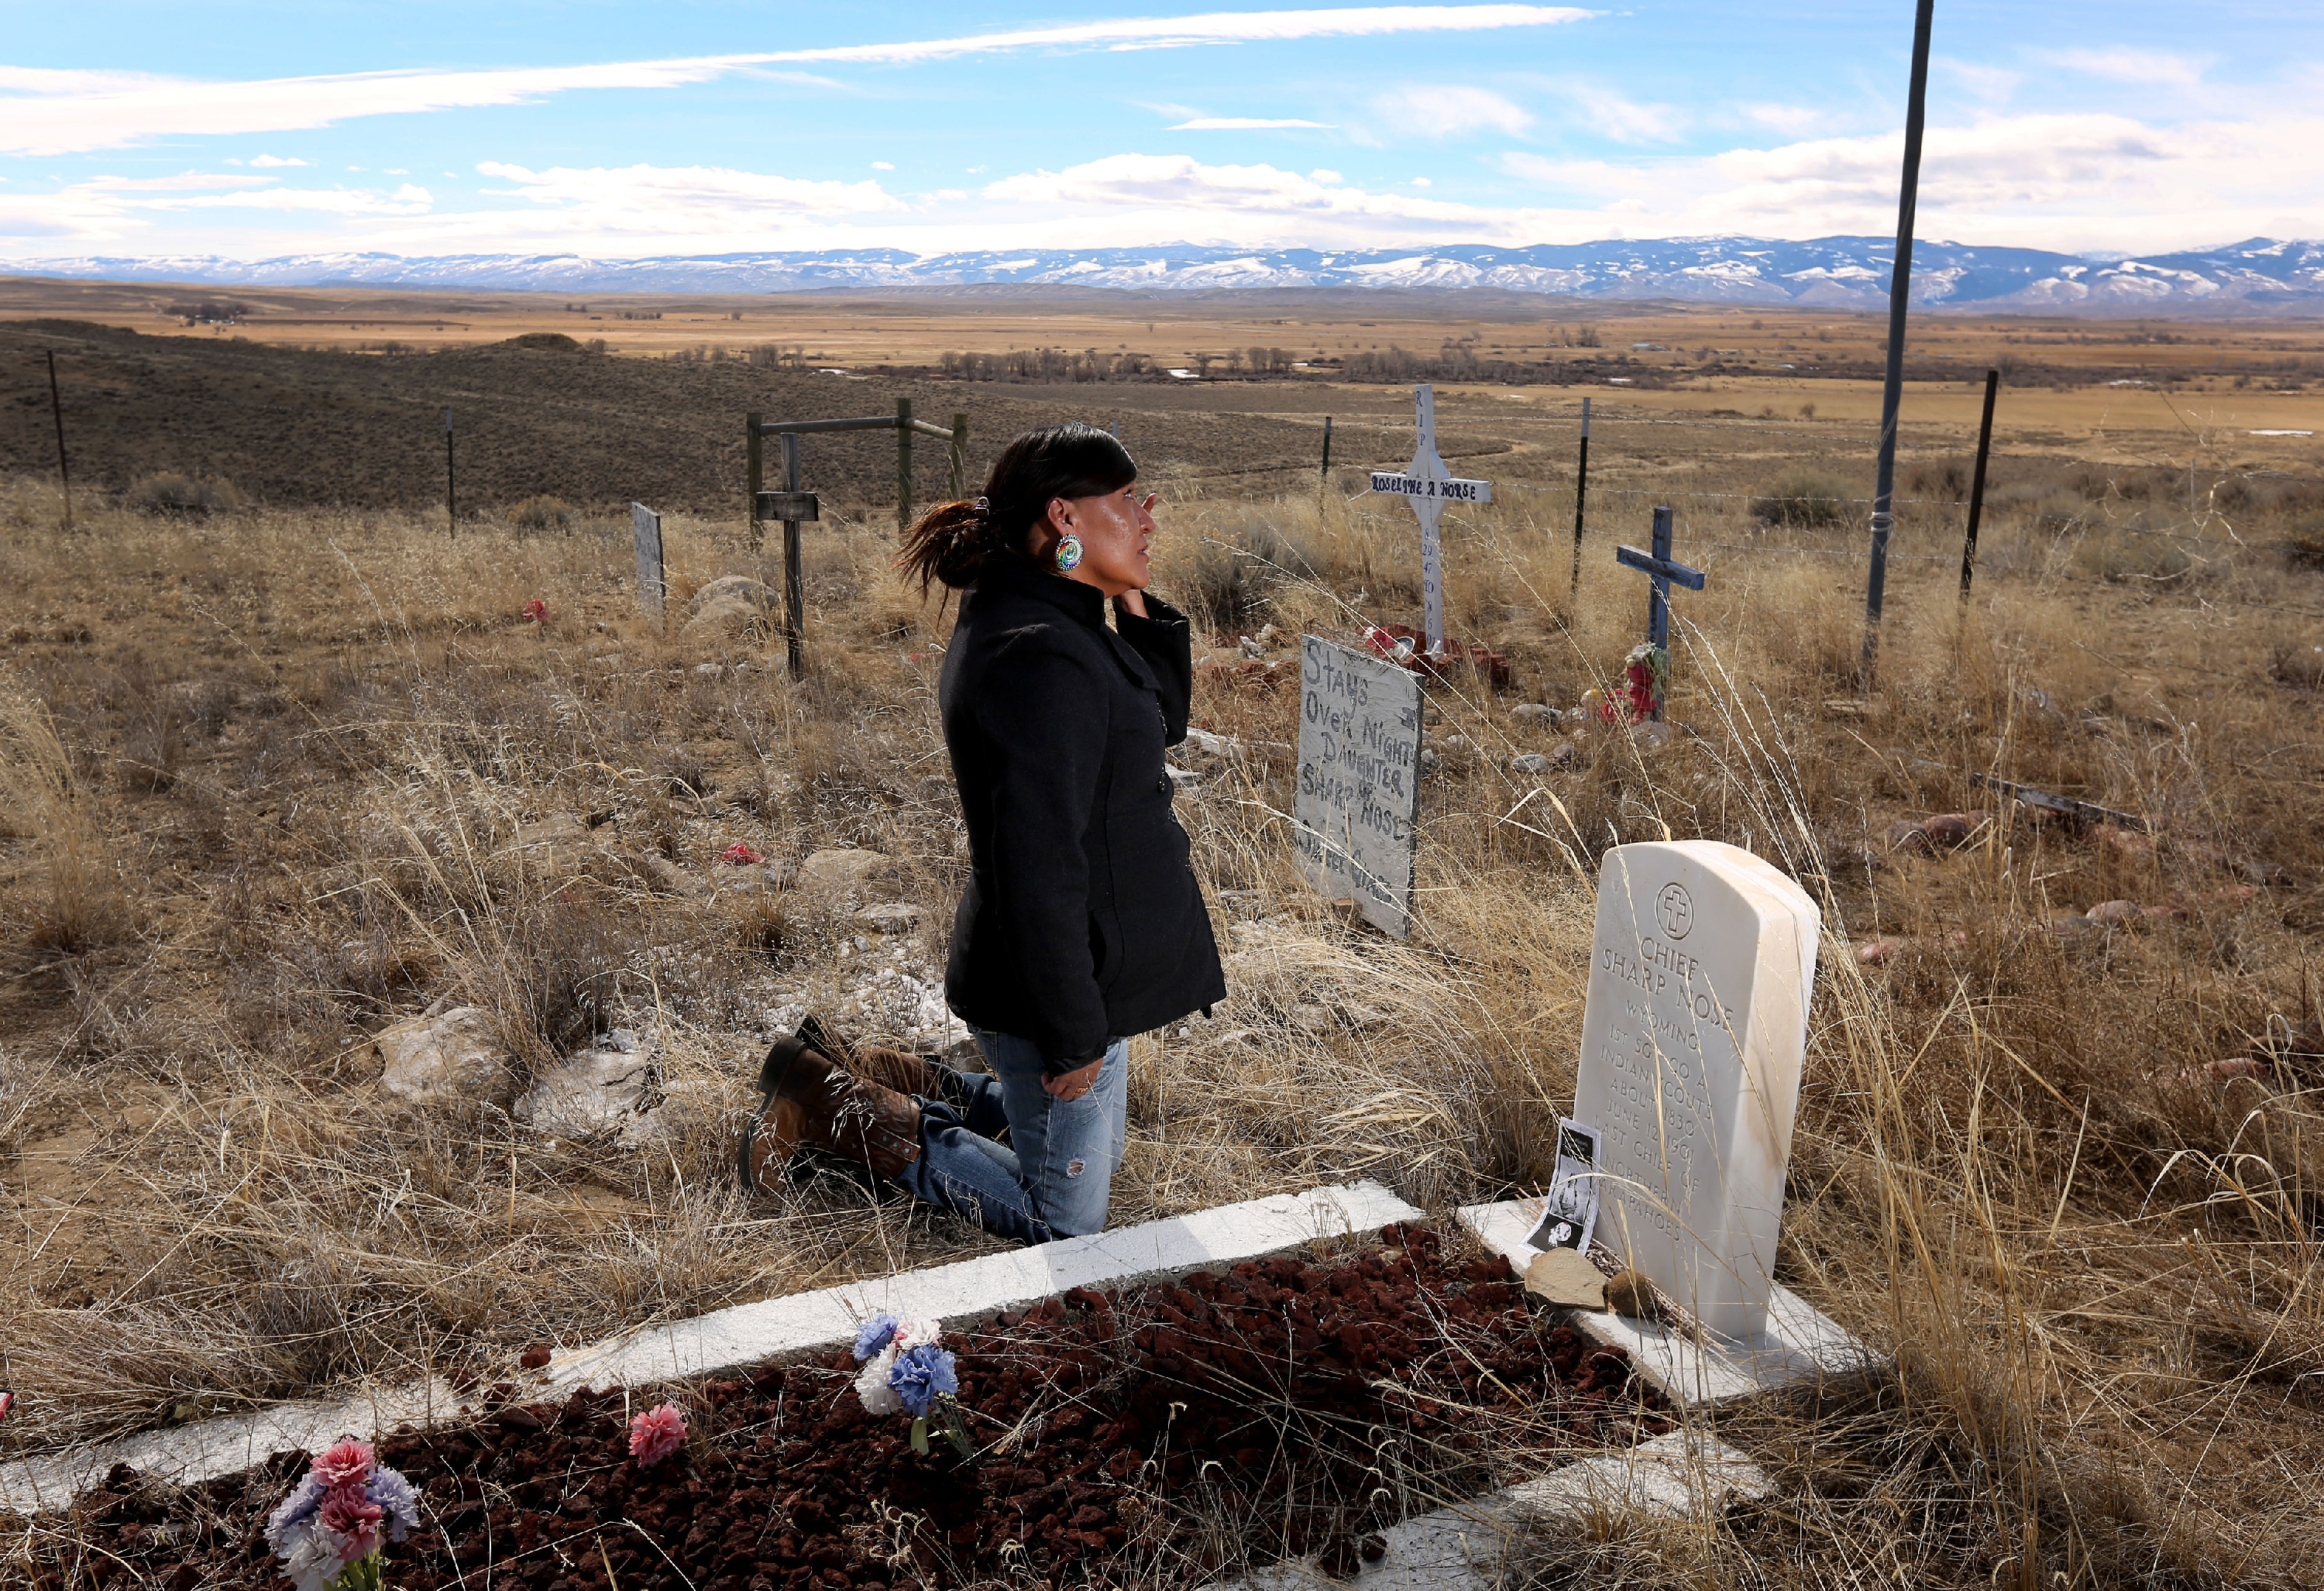 ADVANCE FOR WEEKEND EDITIONS - In this March 1, 2016 photo, Yufna Soldier Wolf wipes away tears while kneeling at the grave of her great-grandfather, Chief Sharp Nose of the Northern Arapaho Tribe, at the family cemetery on the Wind River Reservation near Riverton, Wyo. Soldier Wolf is seeking the remains of her great-uncle Little Chief, who died while attending Carlisle Indian School in Carlisle, Pennsylvania. (Dan Cepeda/The Casper Star-Tribune via AP) MANDATORY CREDIT